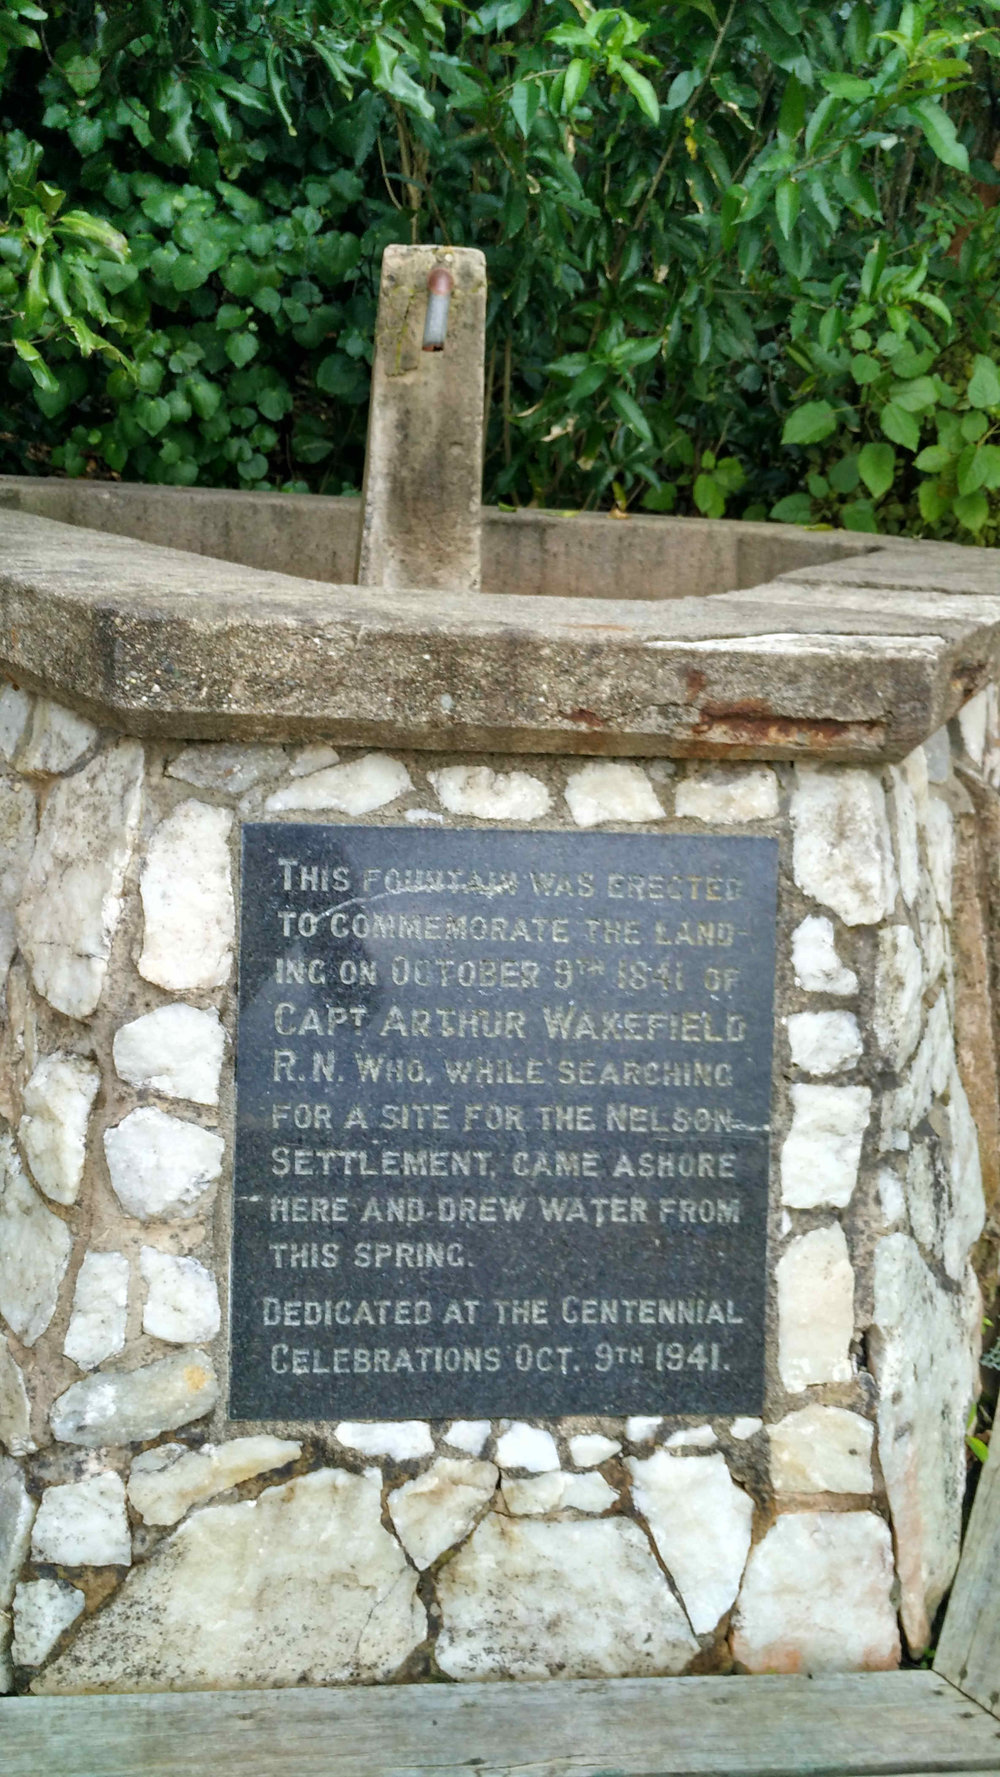 Commemorating the landing of Captain Arthur Wakefield in Nelson in 1841.